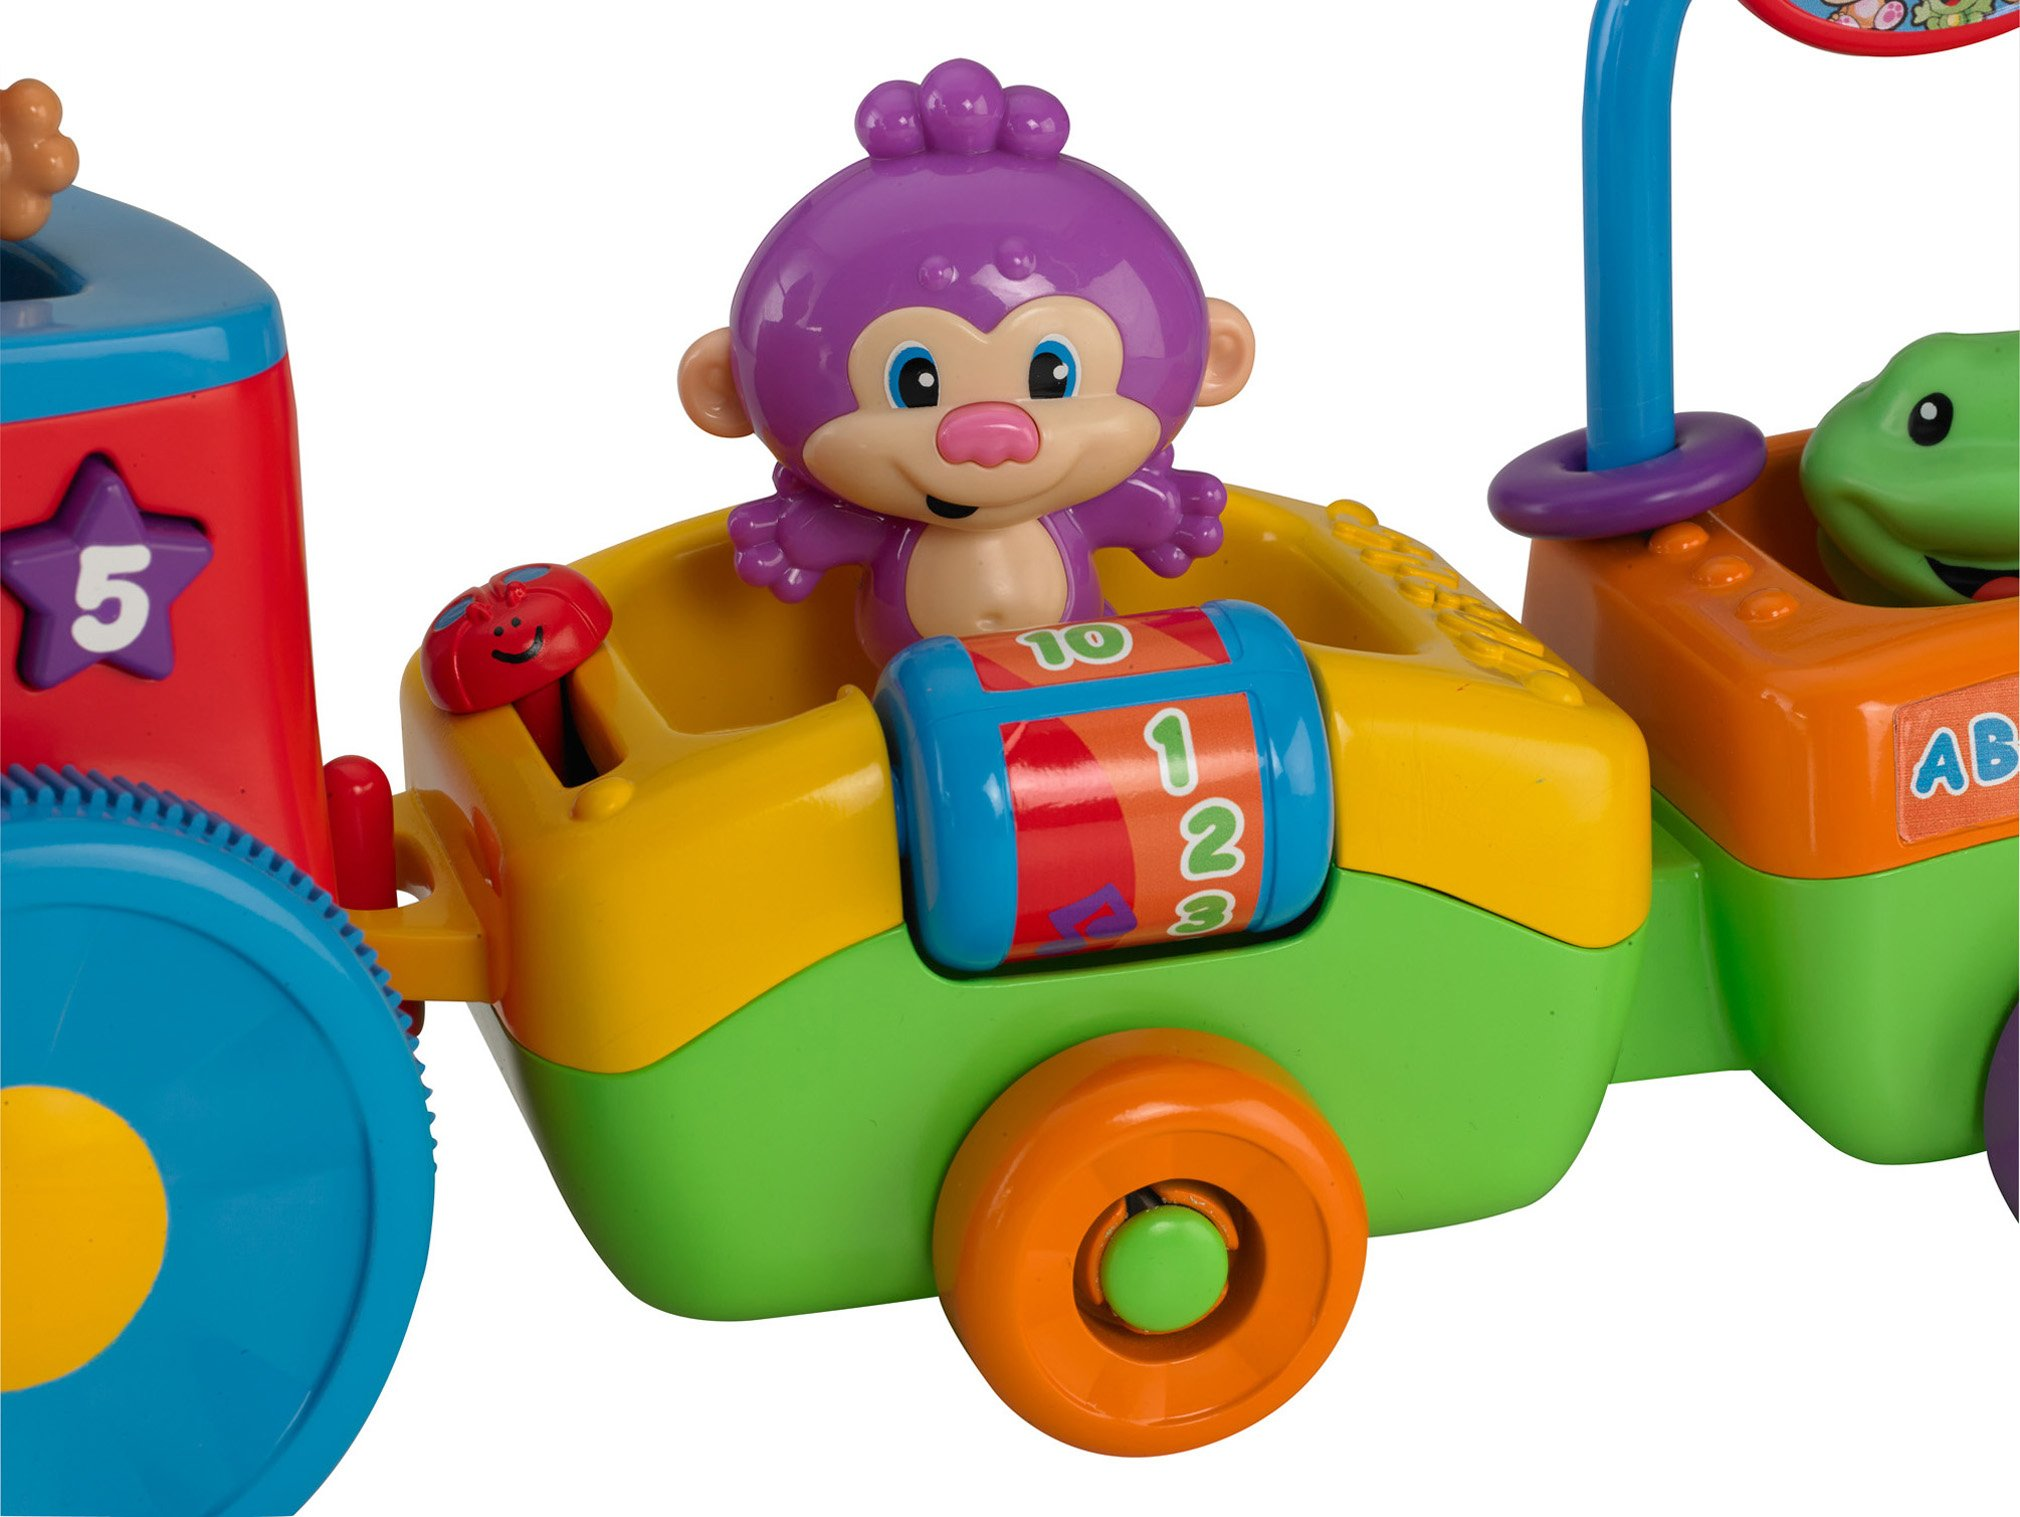 Fisher-Price Laugh & Learn Smart Stages Puppy's Smart Train by Fisher-Price (Image #23)